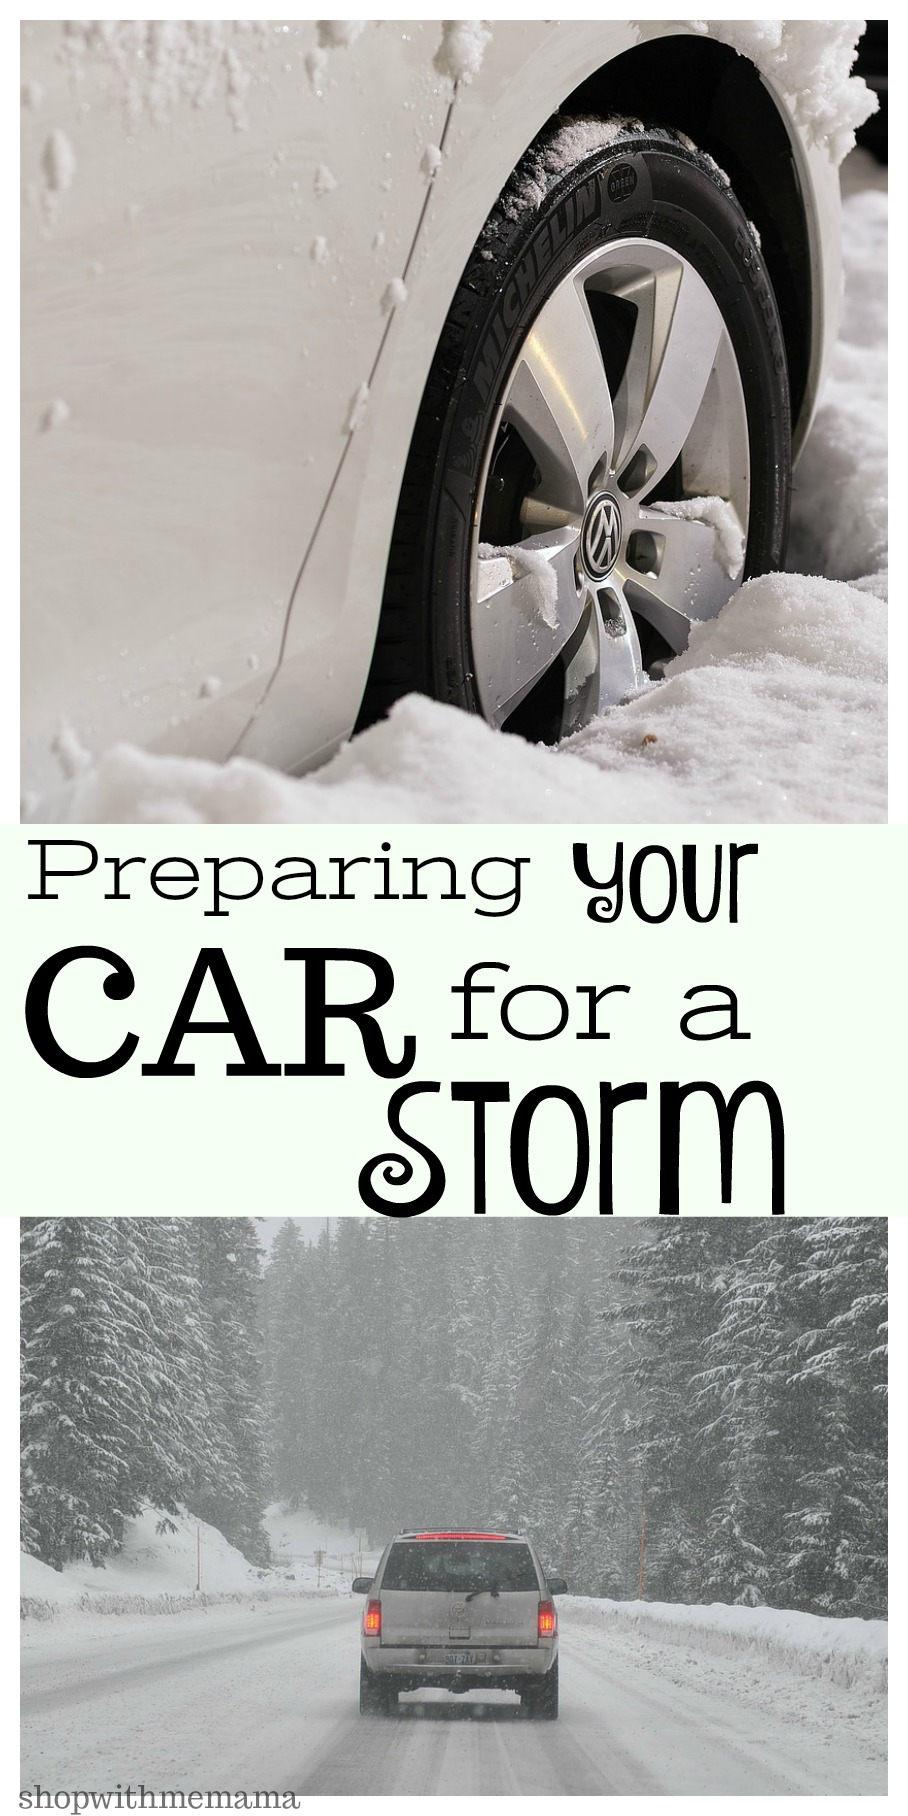 Preparing Your Car for a Storm